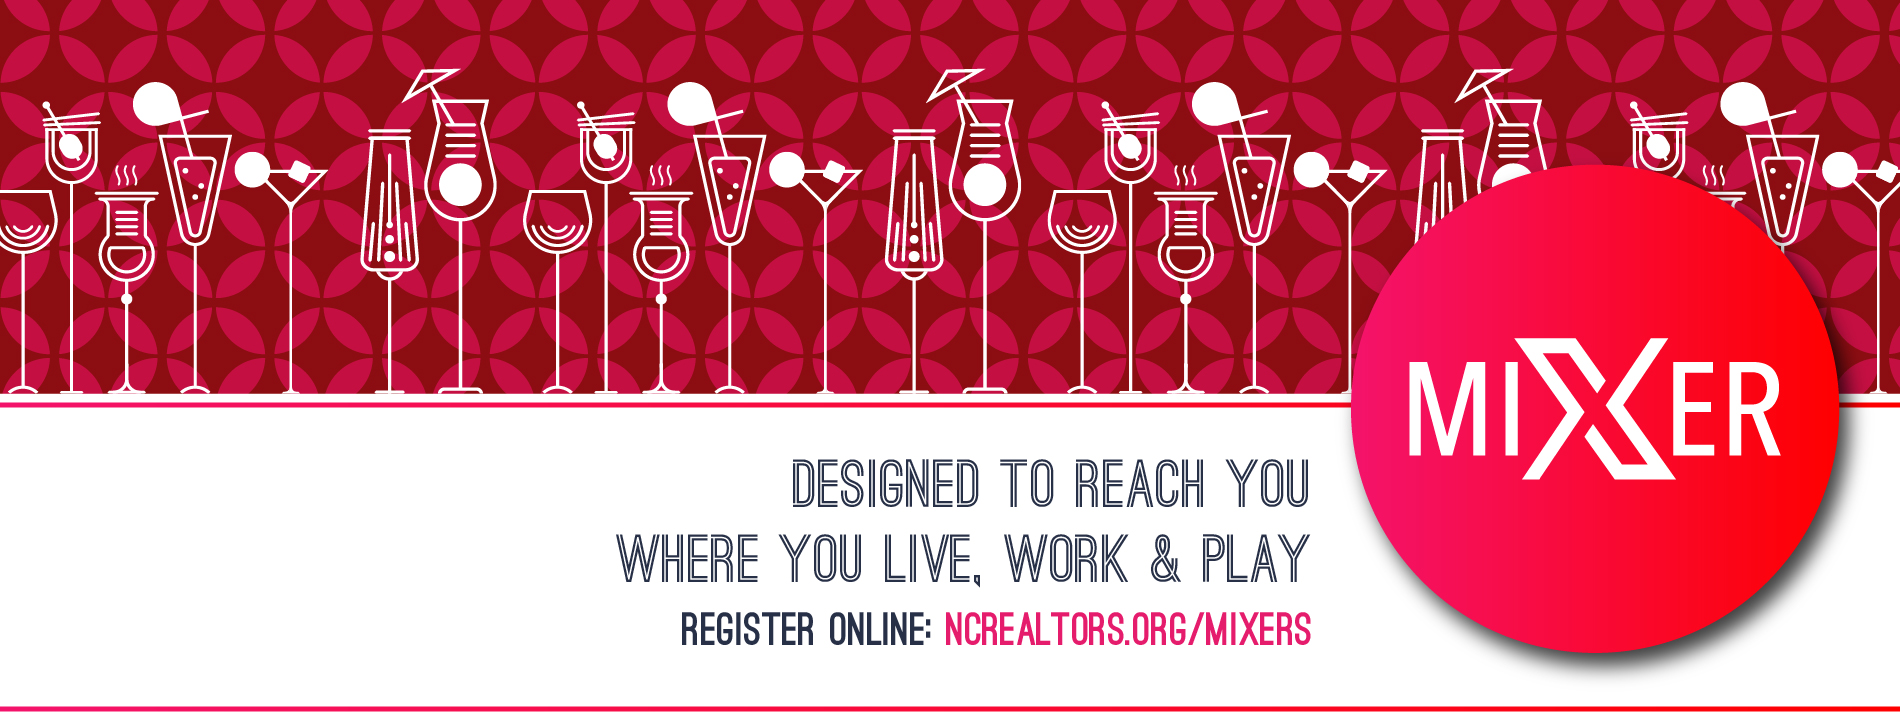 MIXer. Designed to Reach You Where You Live, Work and Play. Register at ncrealtors.org/mixers